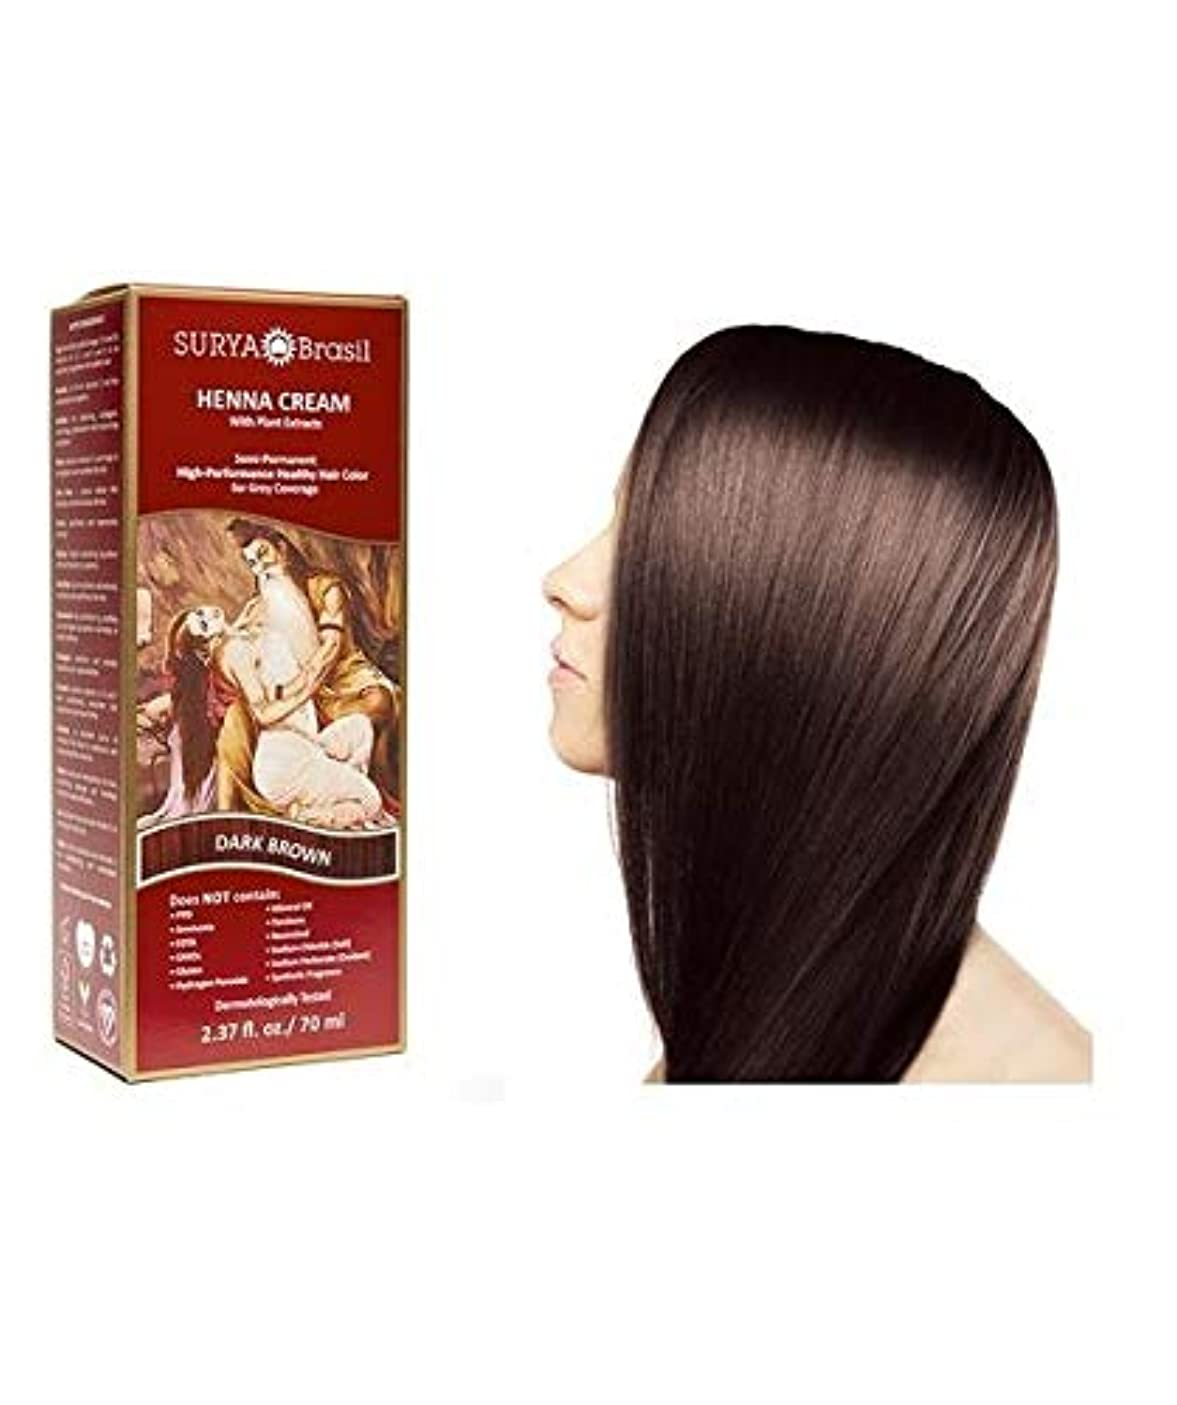 脅迫クリスチャン不誠実Surya Henna Henna Cream High-Performance Healthy Hair Color for Grey Coverage Dark Brown 2 37 fl oz 70 ml